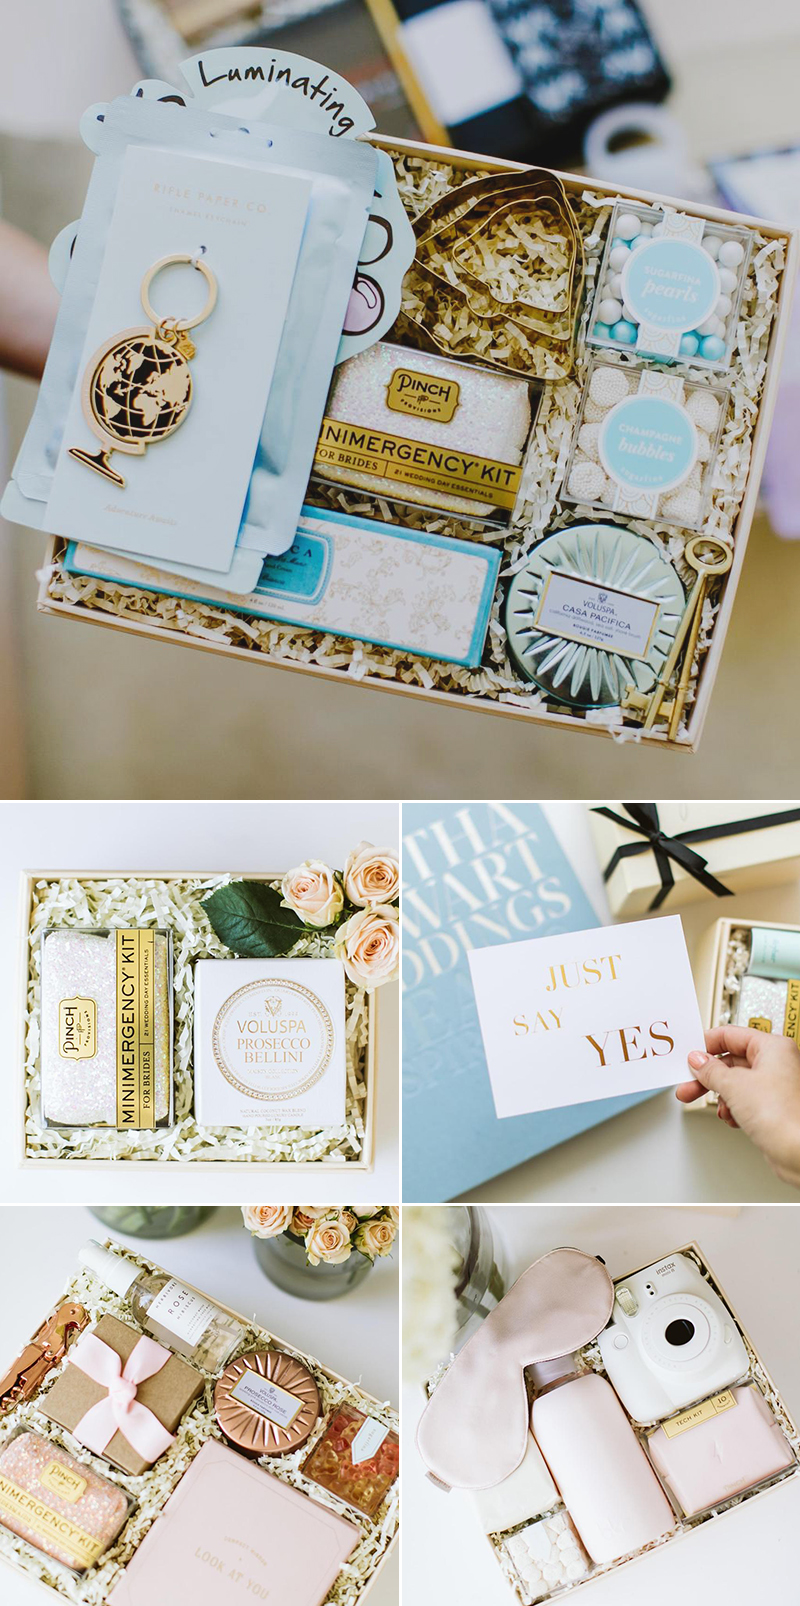 BOXFOX Curated Gift Boxes for Brides